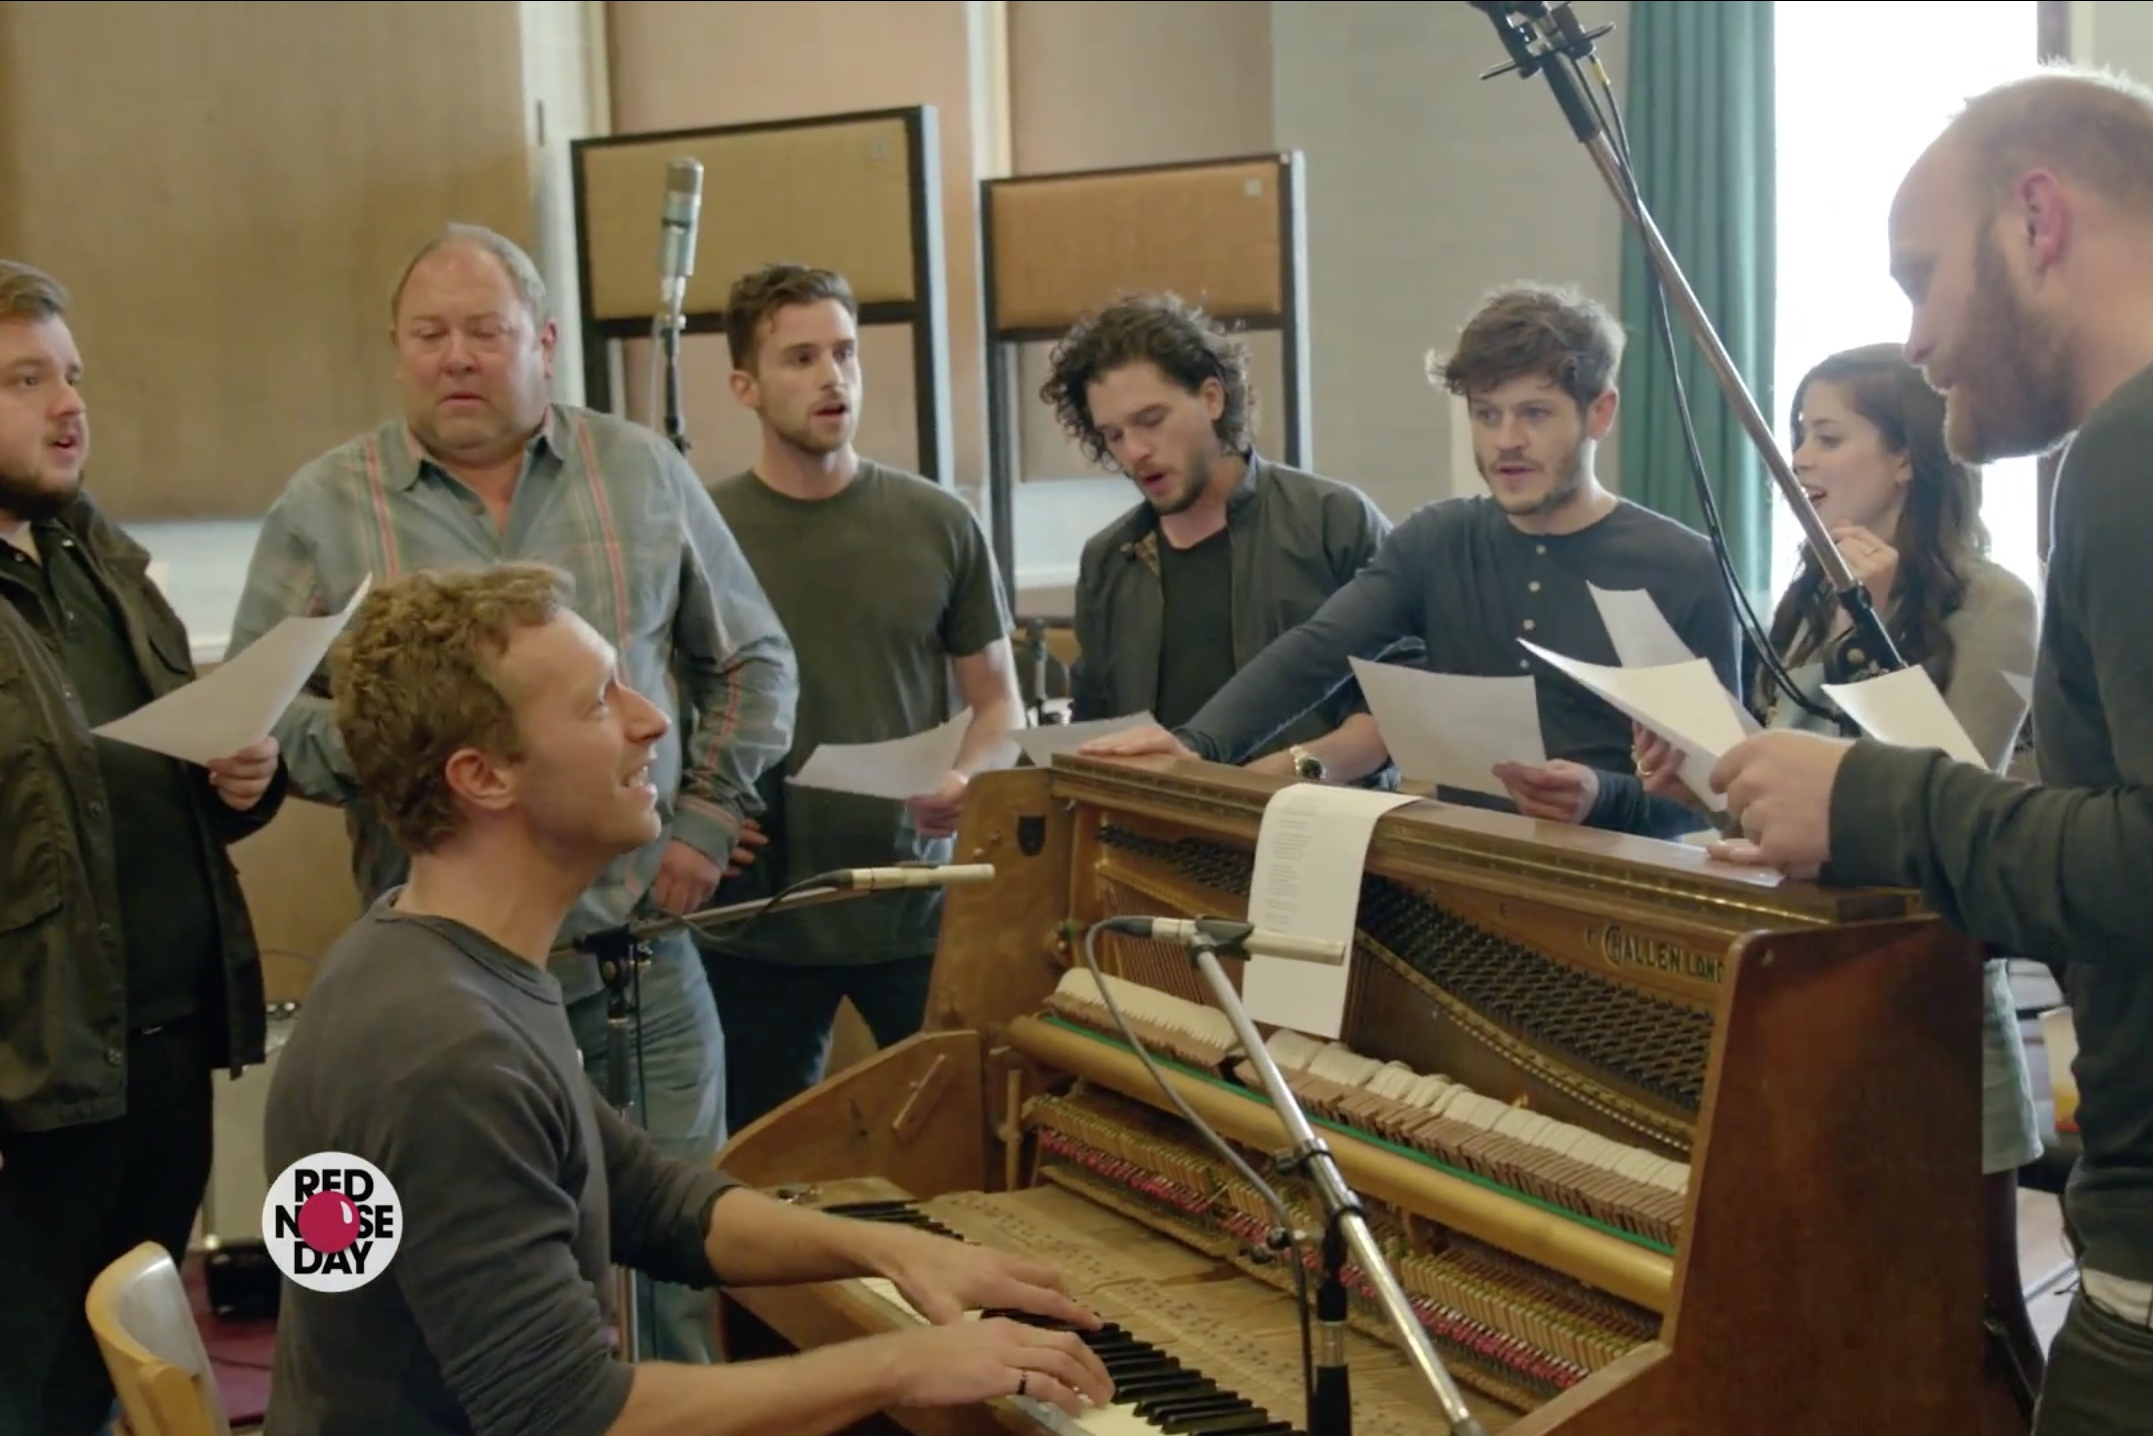 Coldplay 'Game of Thrones: The Musical' (mockumentary)